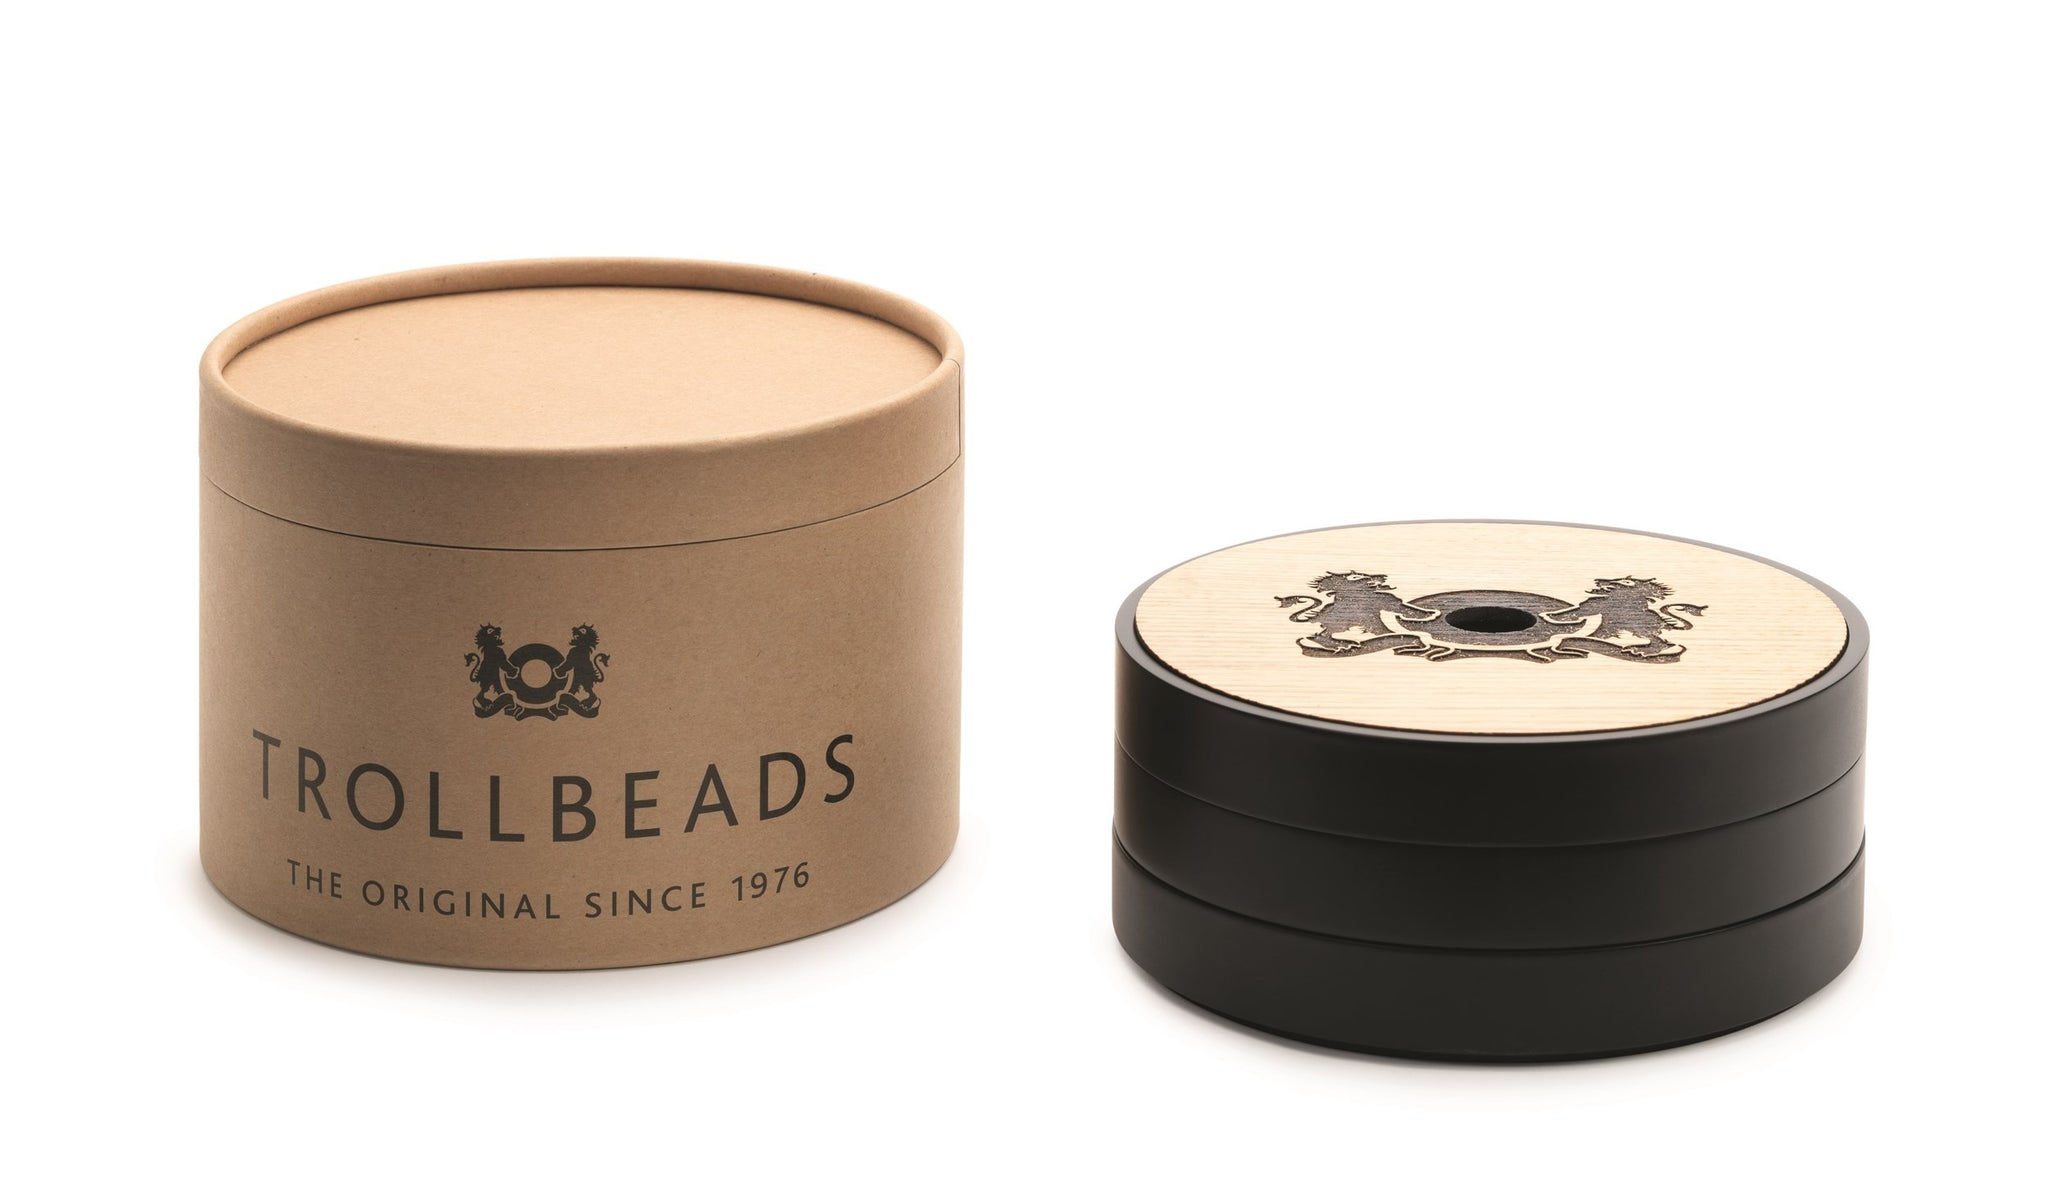 Trollbeads Black Jewellery Box